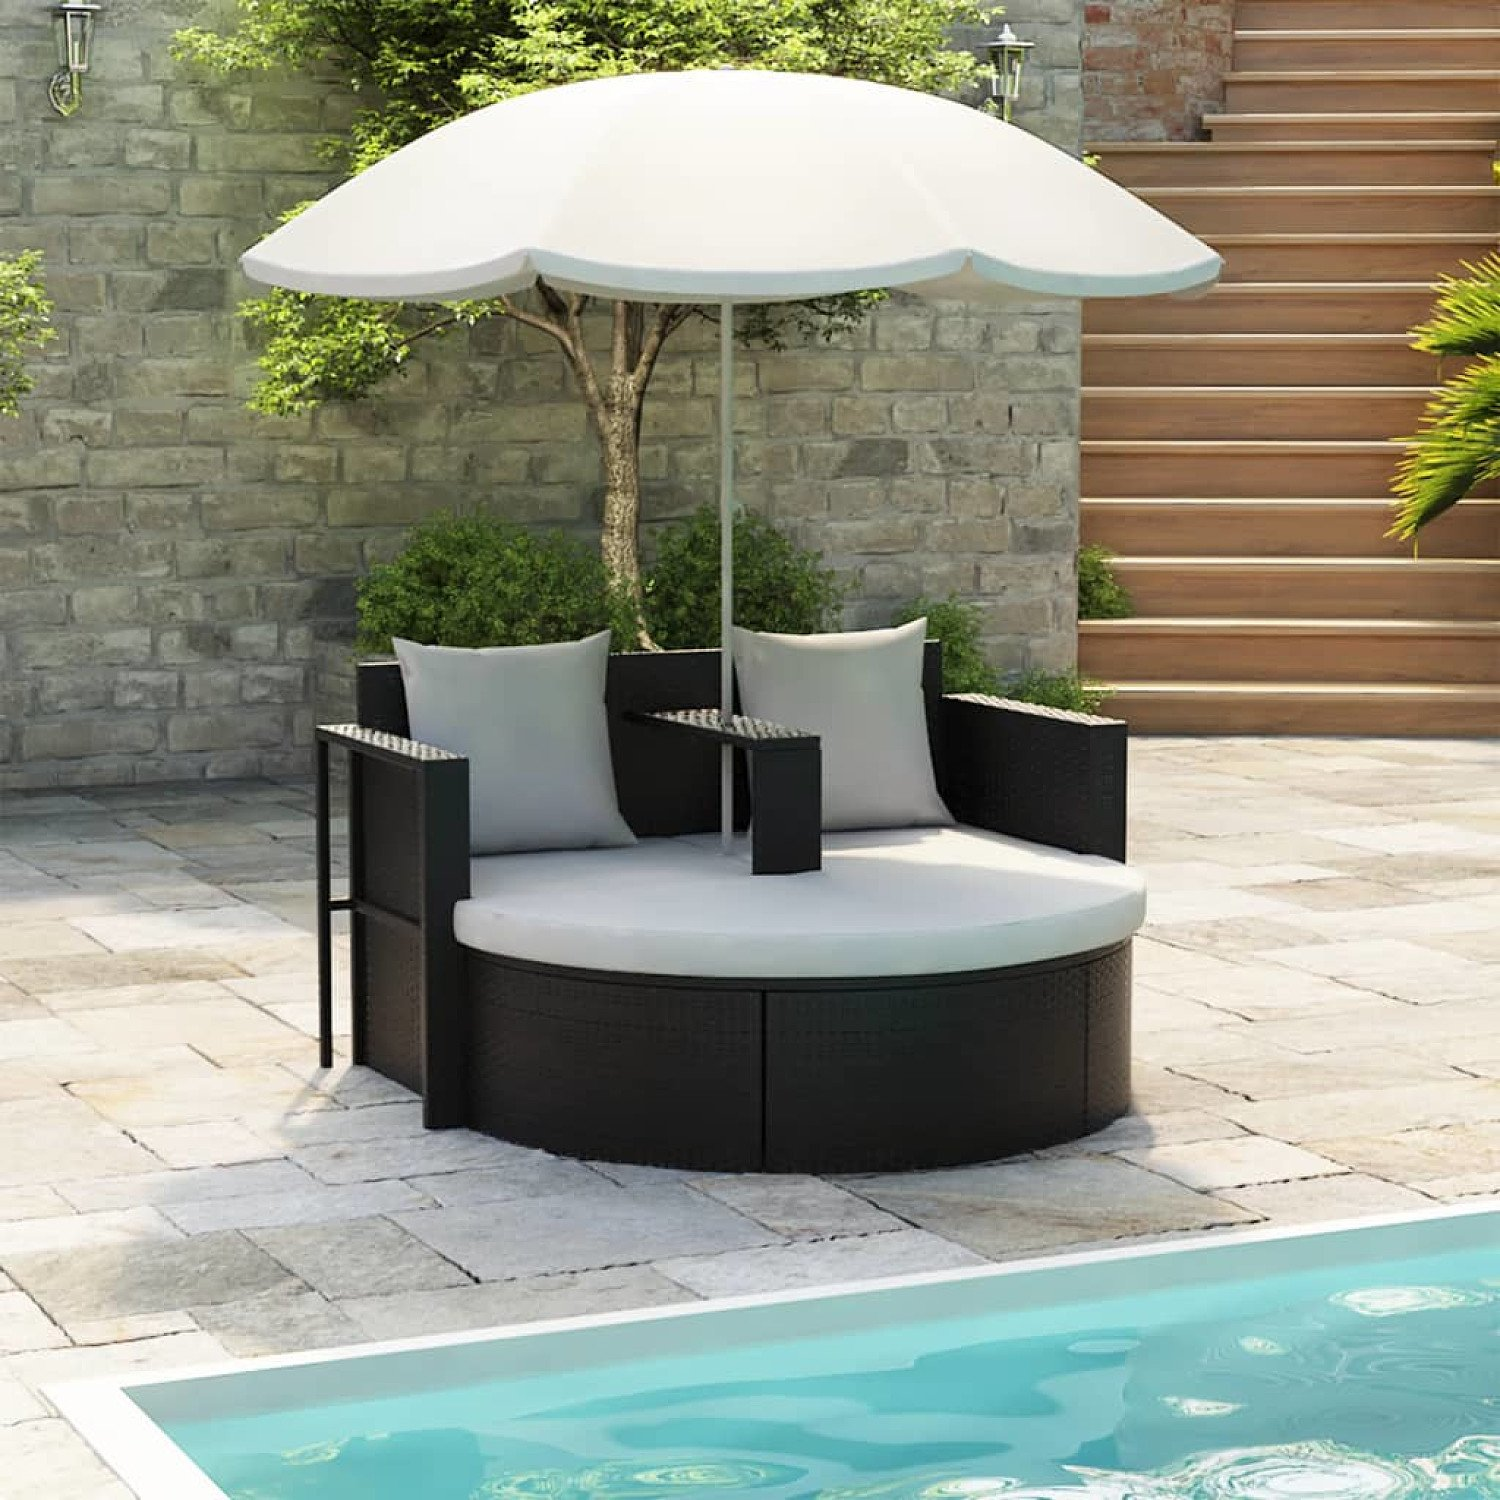 Get ready for Spring - Garden Bed with Parasol - Black Poly Rattan - free Delivery £354.99